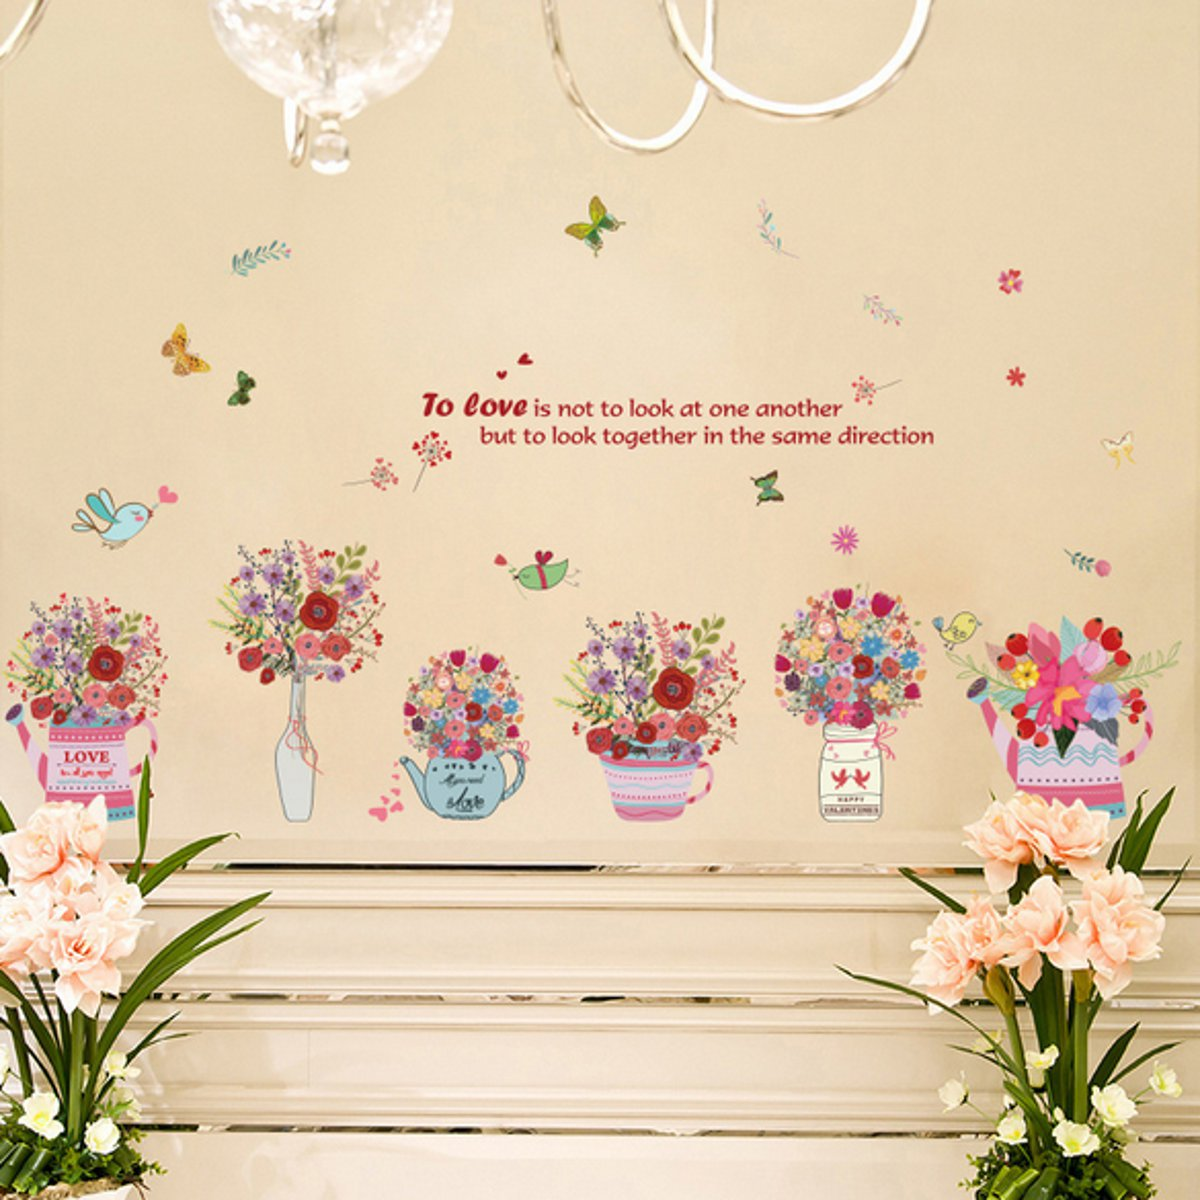 Details About Diy Flower Pvc Removable Decal Wall Sticker Vinyl Art Mural Home Bedroom Decor